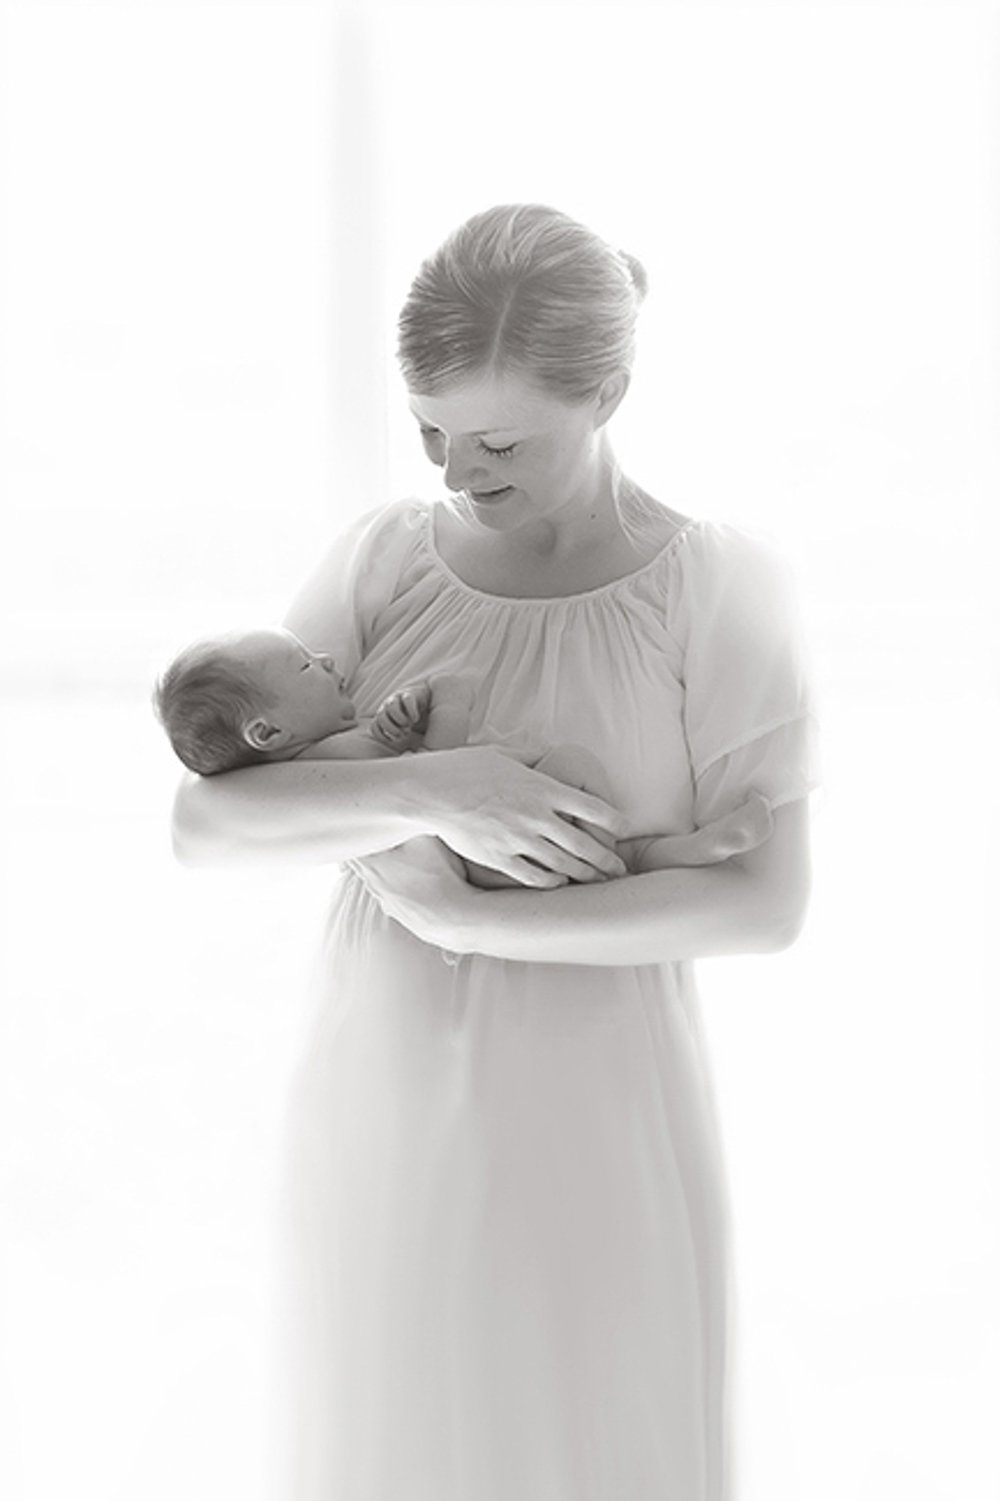 newborn-blackandwhite-studio-posed-107.JPG